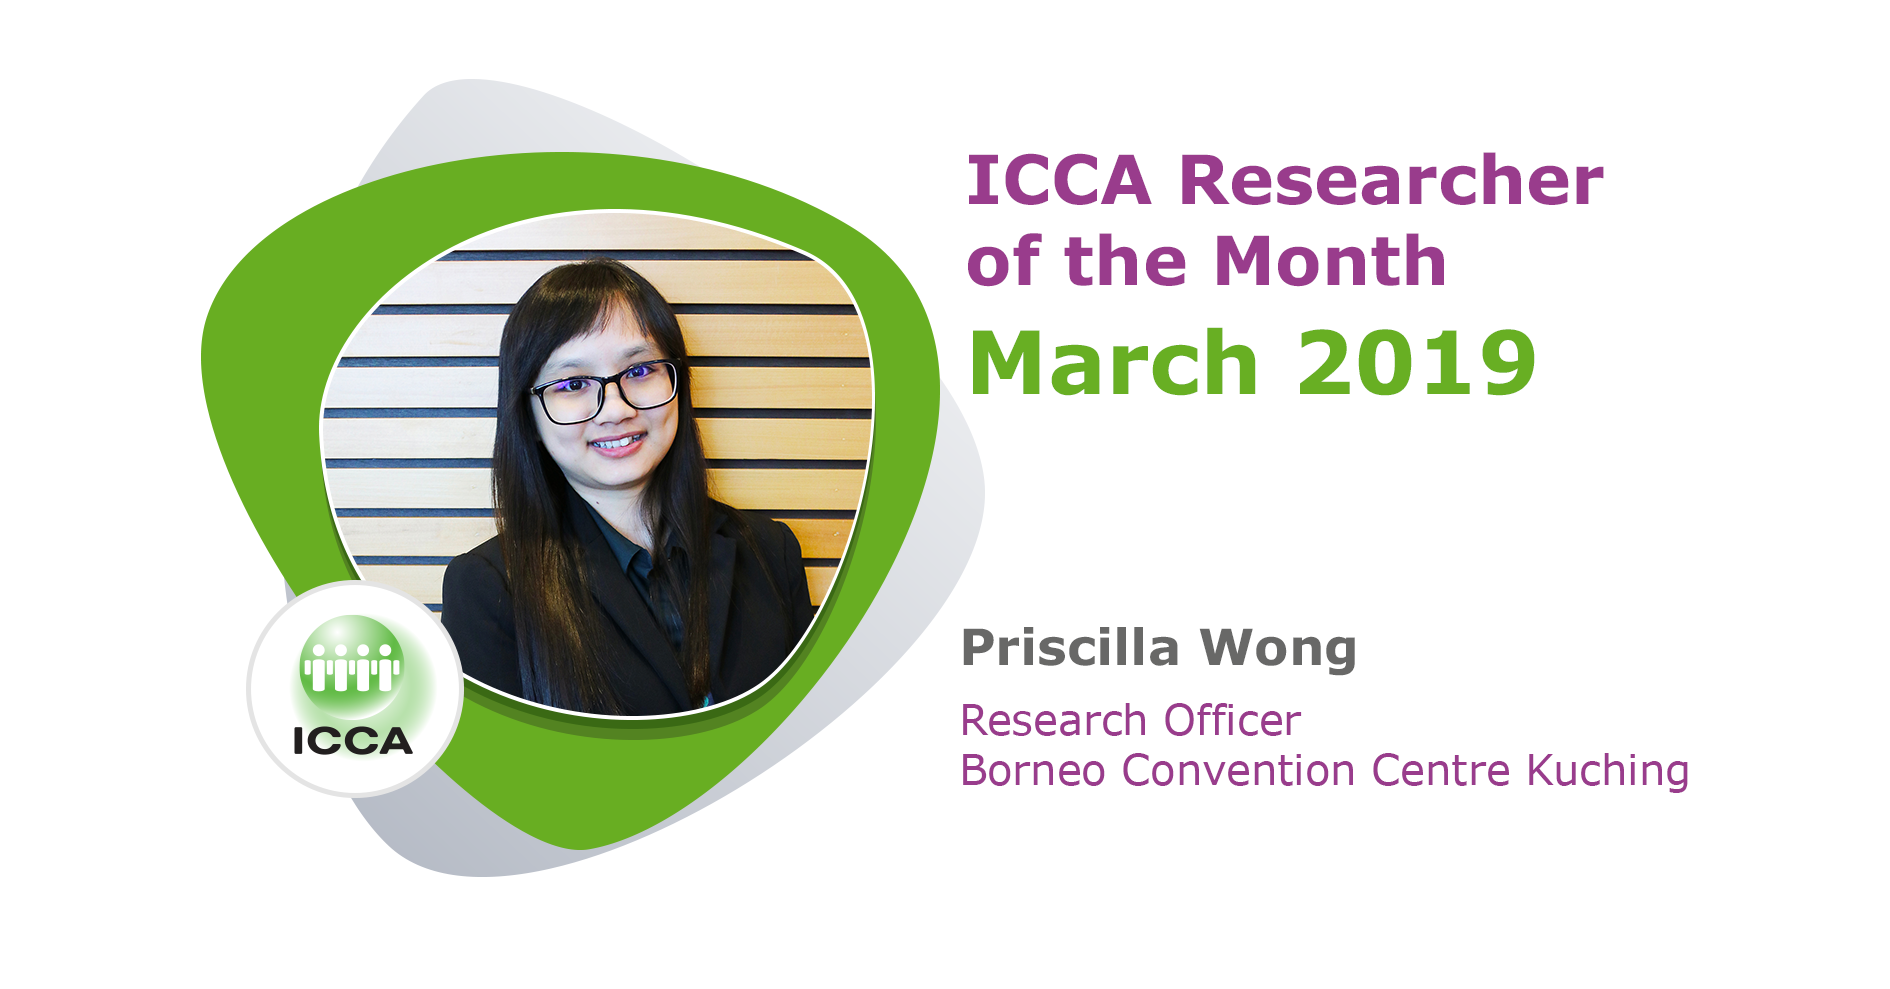 For March 2019, Priscilla Wong, Research Officer at Borneo Convention Centre Kuching, has secured the coveted title!